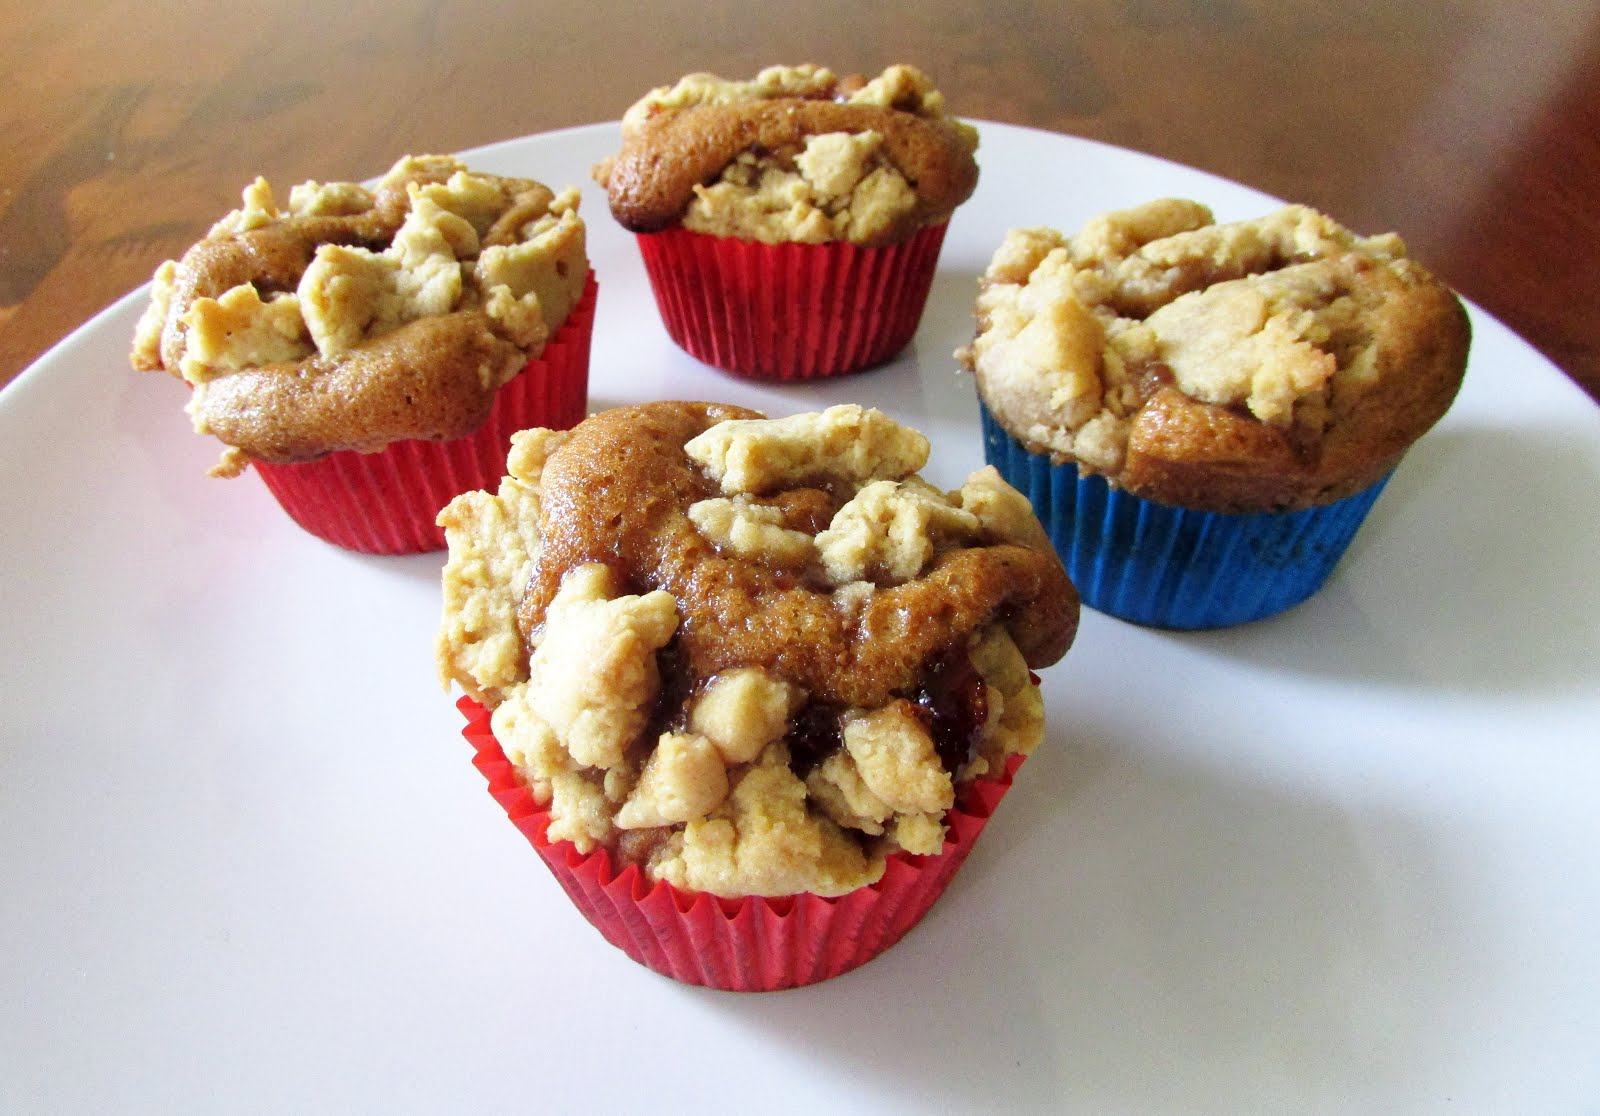 The Ugly Muffin: Peanut Butter and Jelly Crumb Muffins